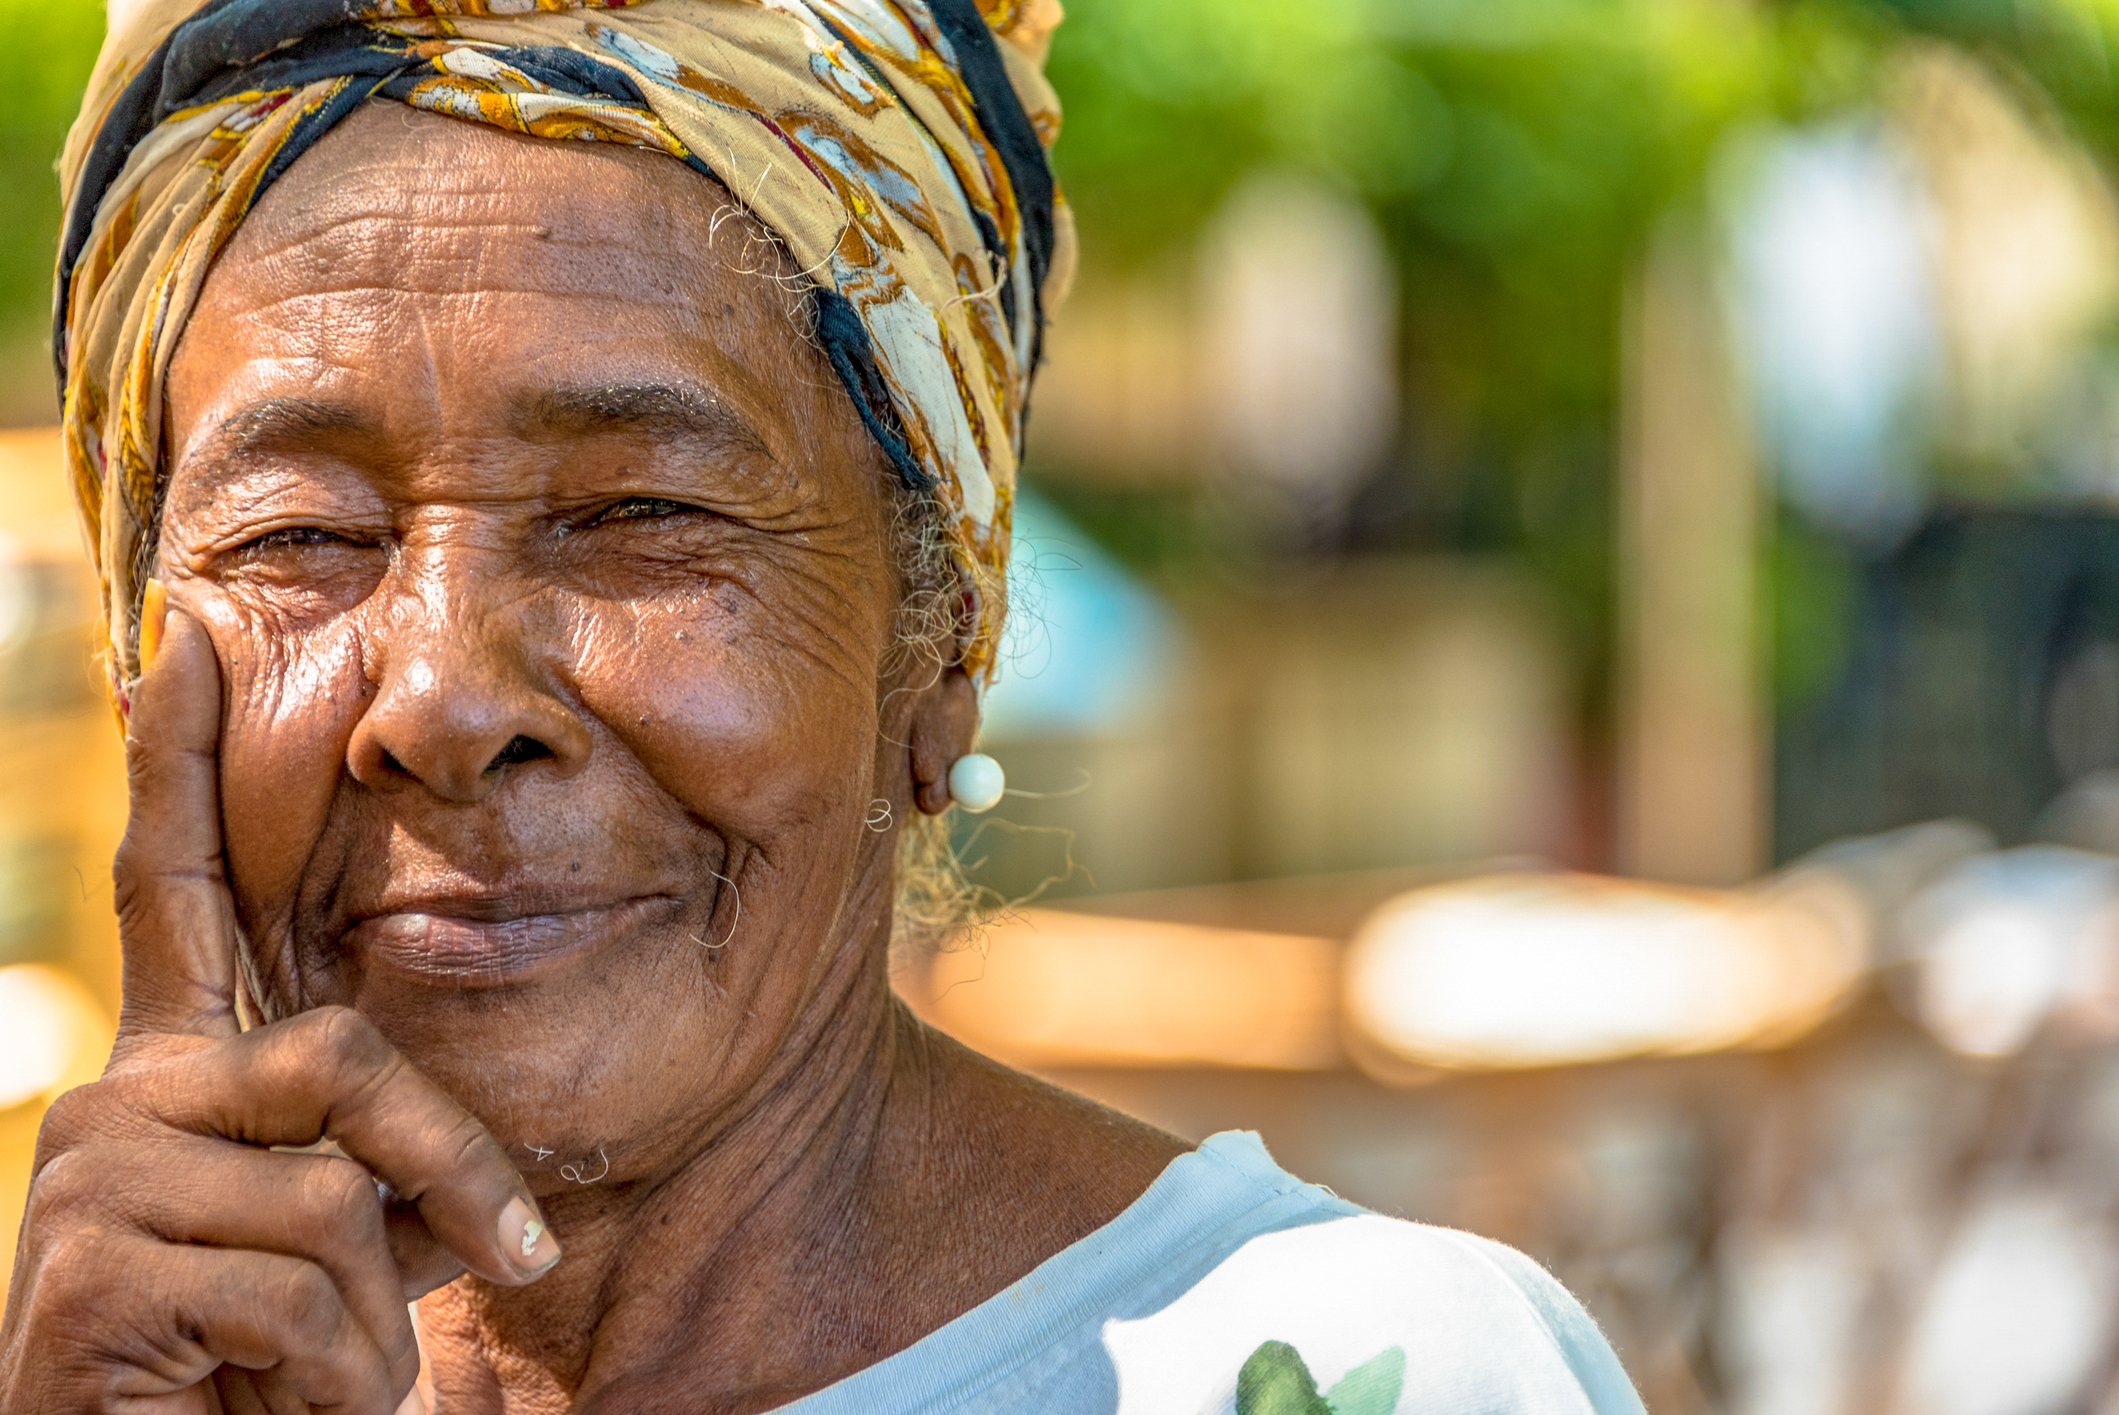 Cuban Afro Caribbean woman in Old Havana. People are friendly and an attraction to photographers. Old Havana is a Unesco World Heritage Site